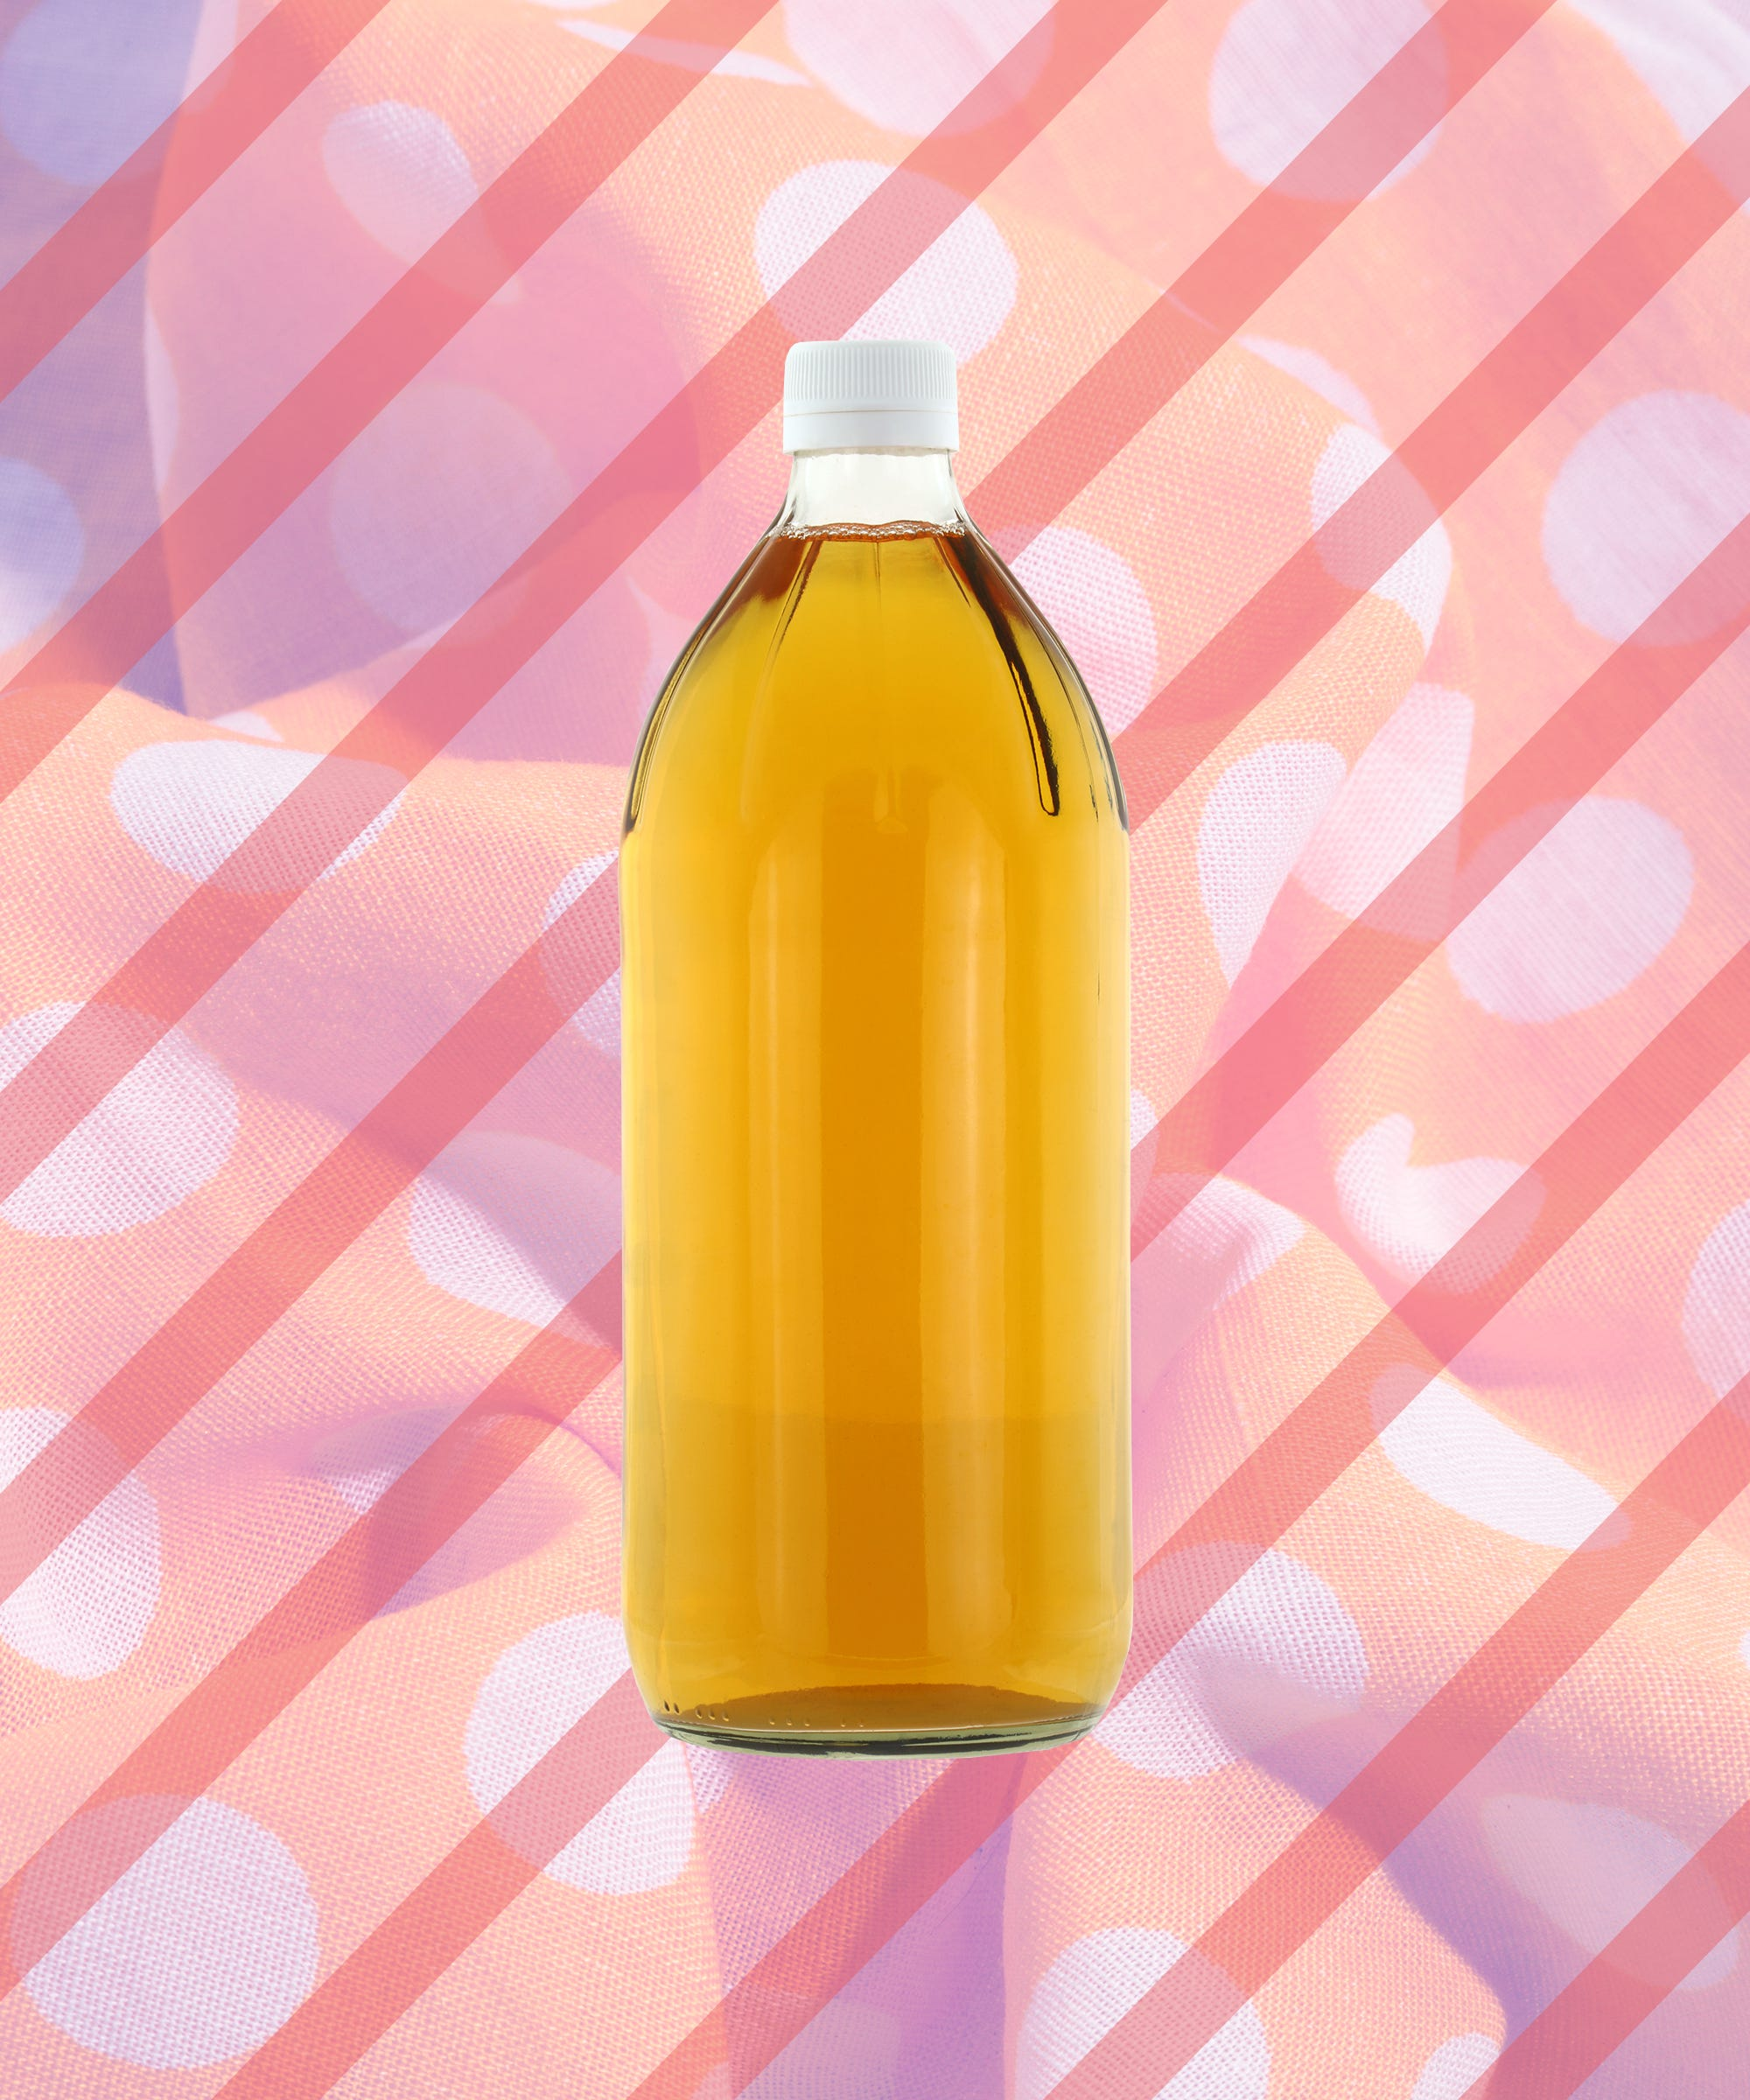 Love Apple Cider Vinegar? It Probably Doesn't Love You Back